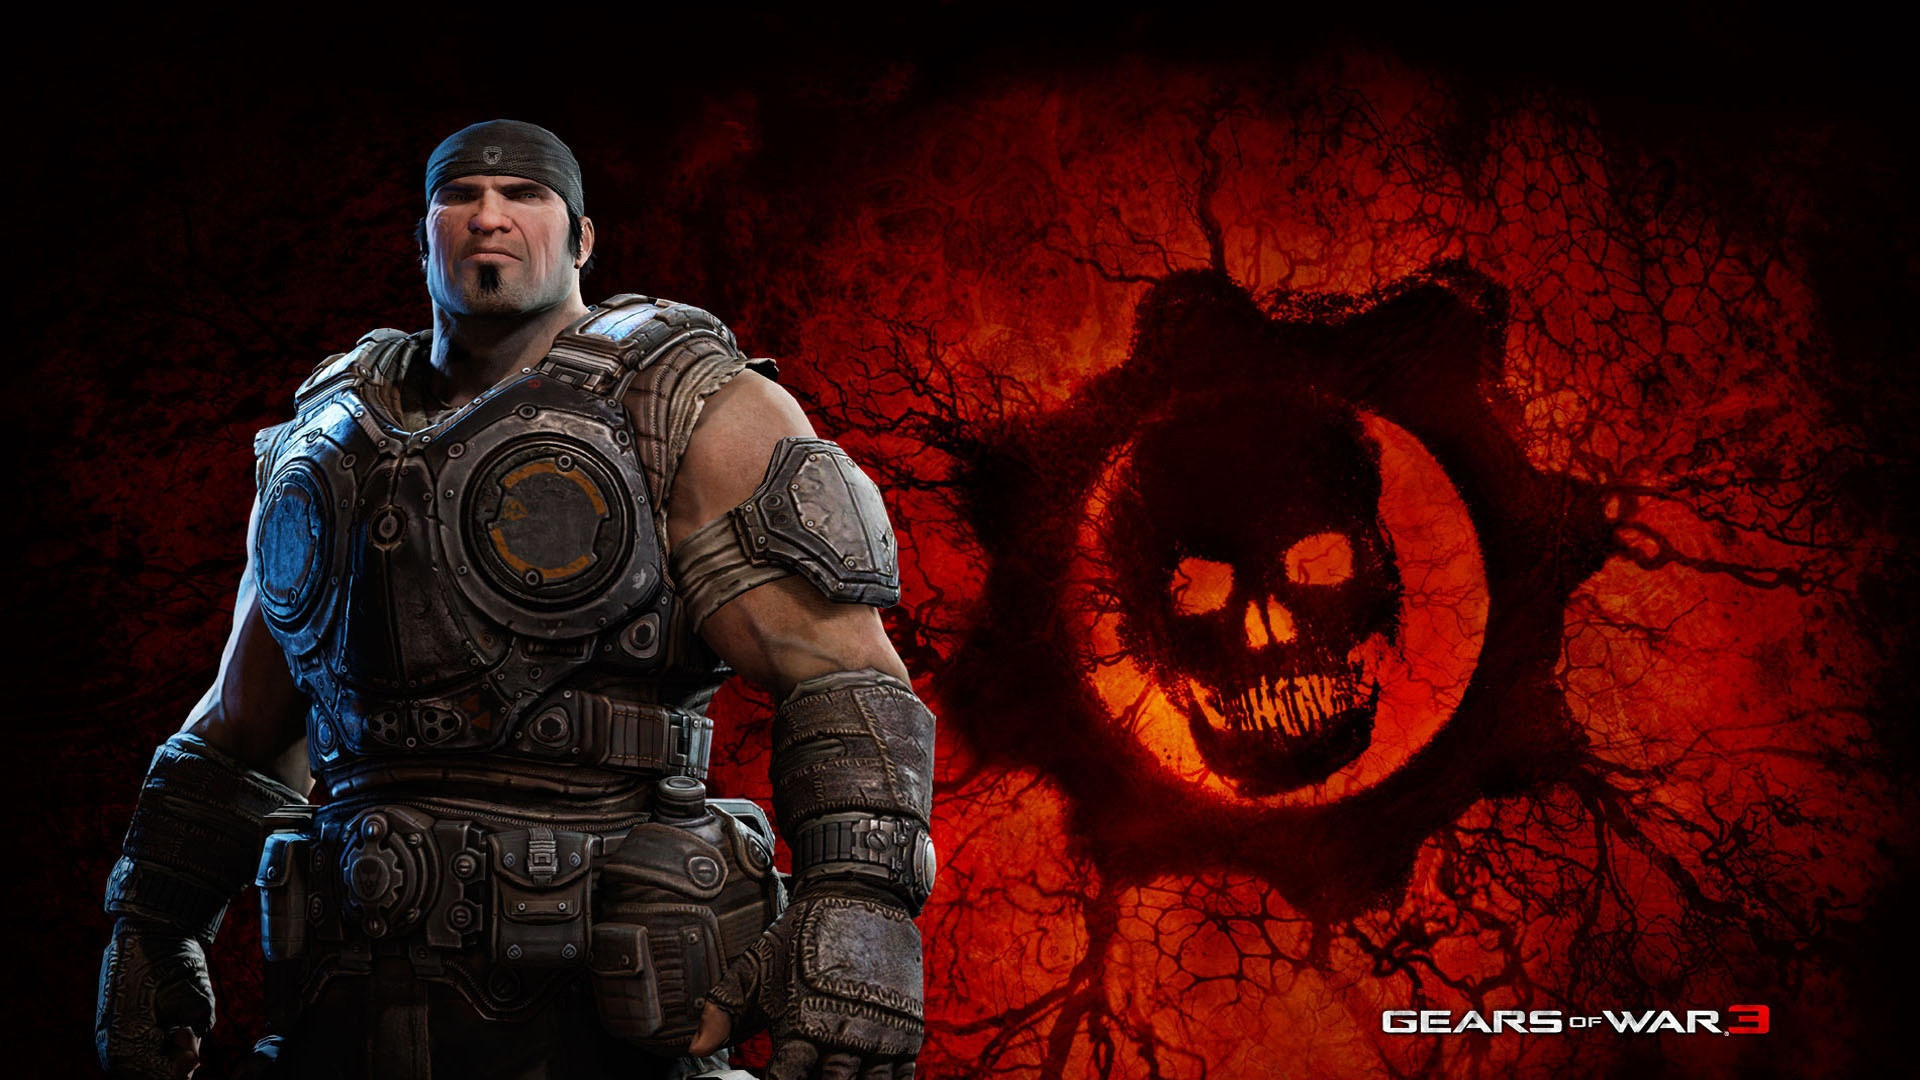 1920x1080 Wallpaper #13 Wallpaper from Gears of War 3